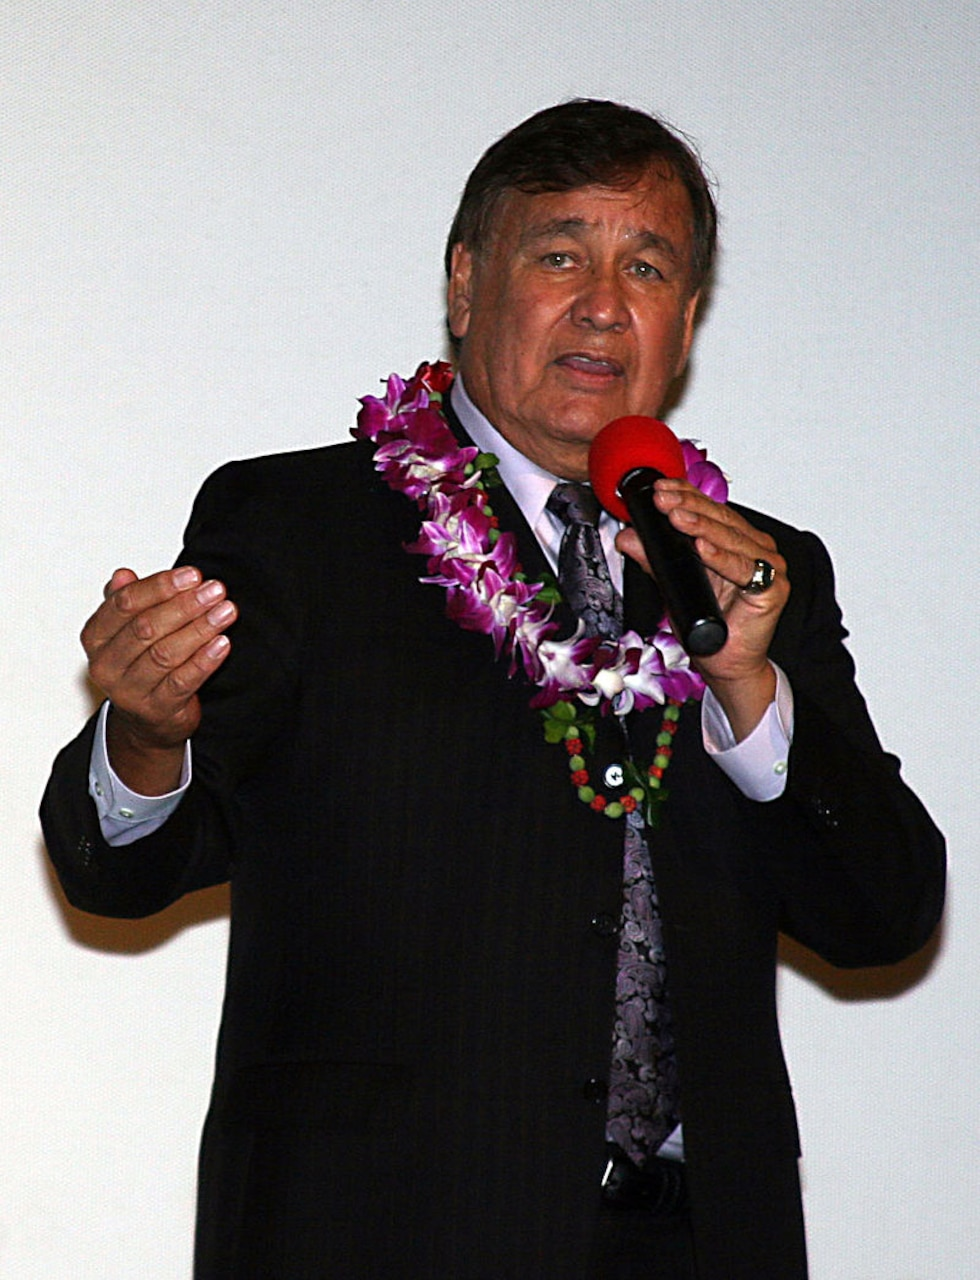 A man in business attire with a lei around his neck speaks into a microphone.